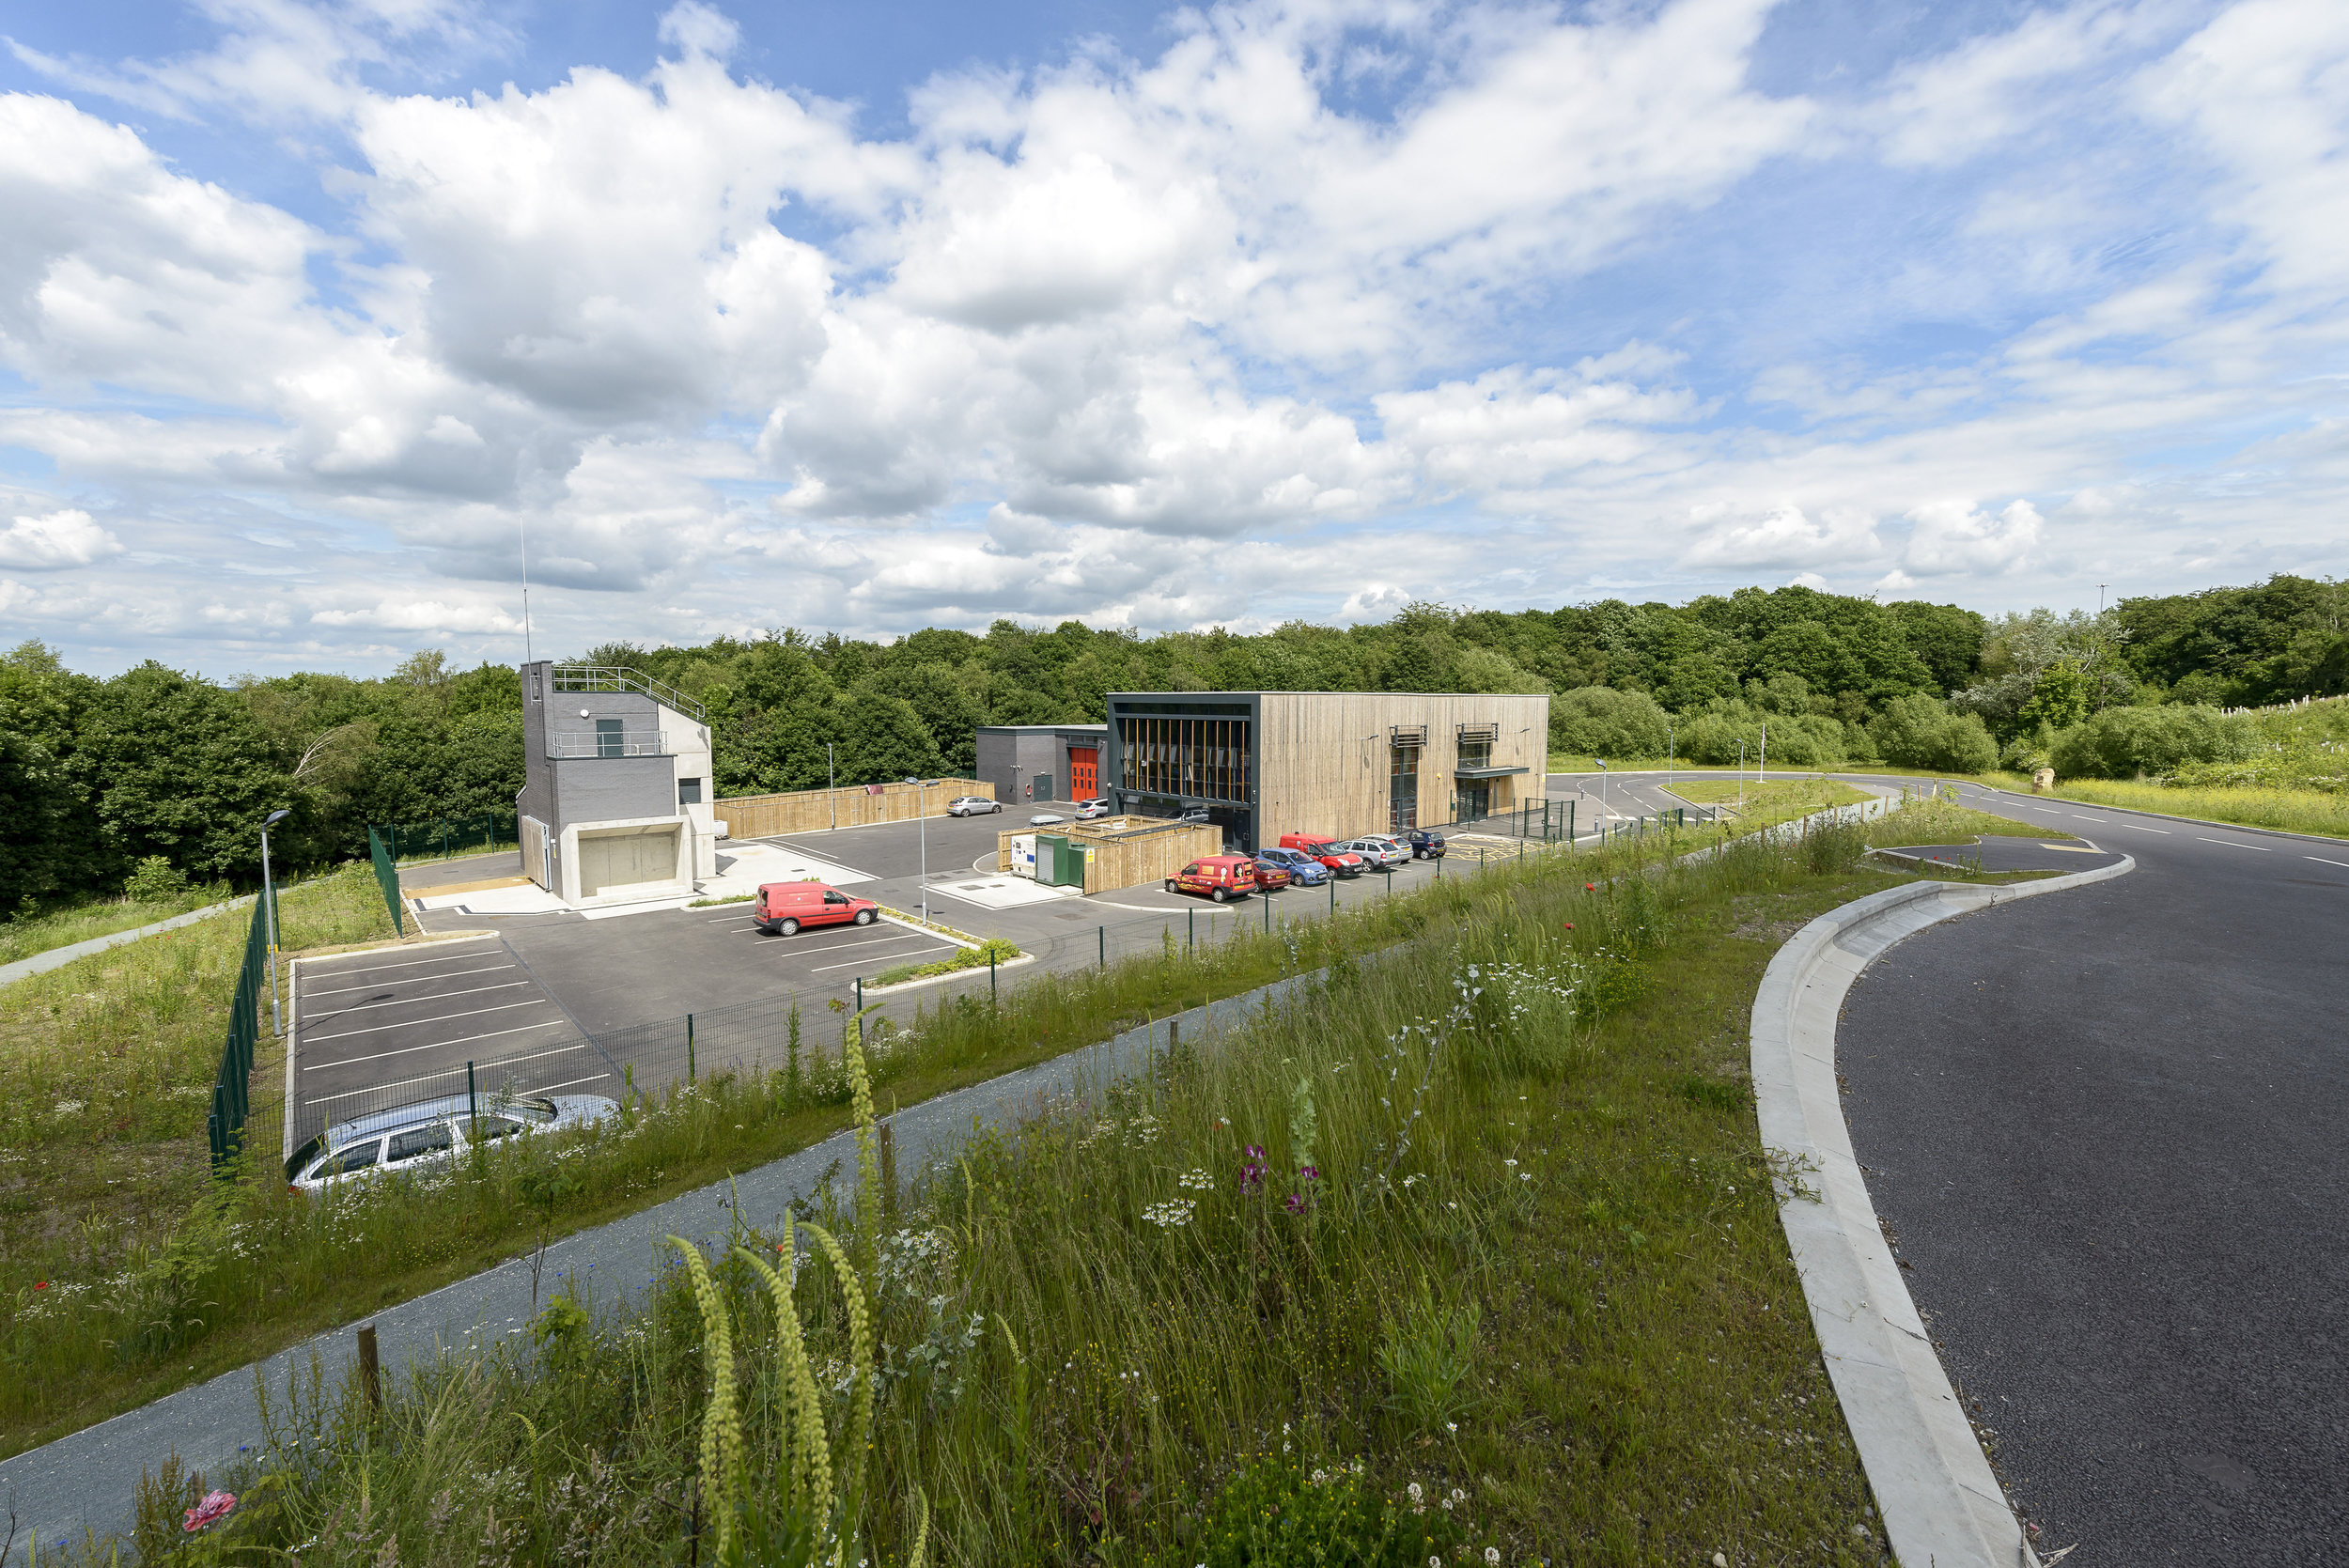 Stephen-Hill-Architects-Parkway-Fire-Station-Sheffield-06